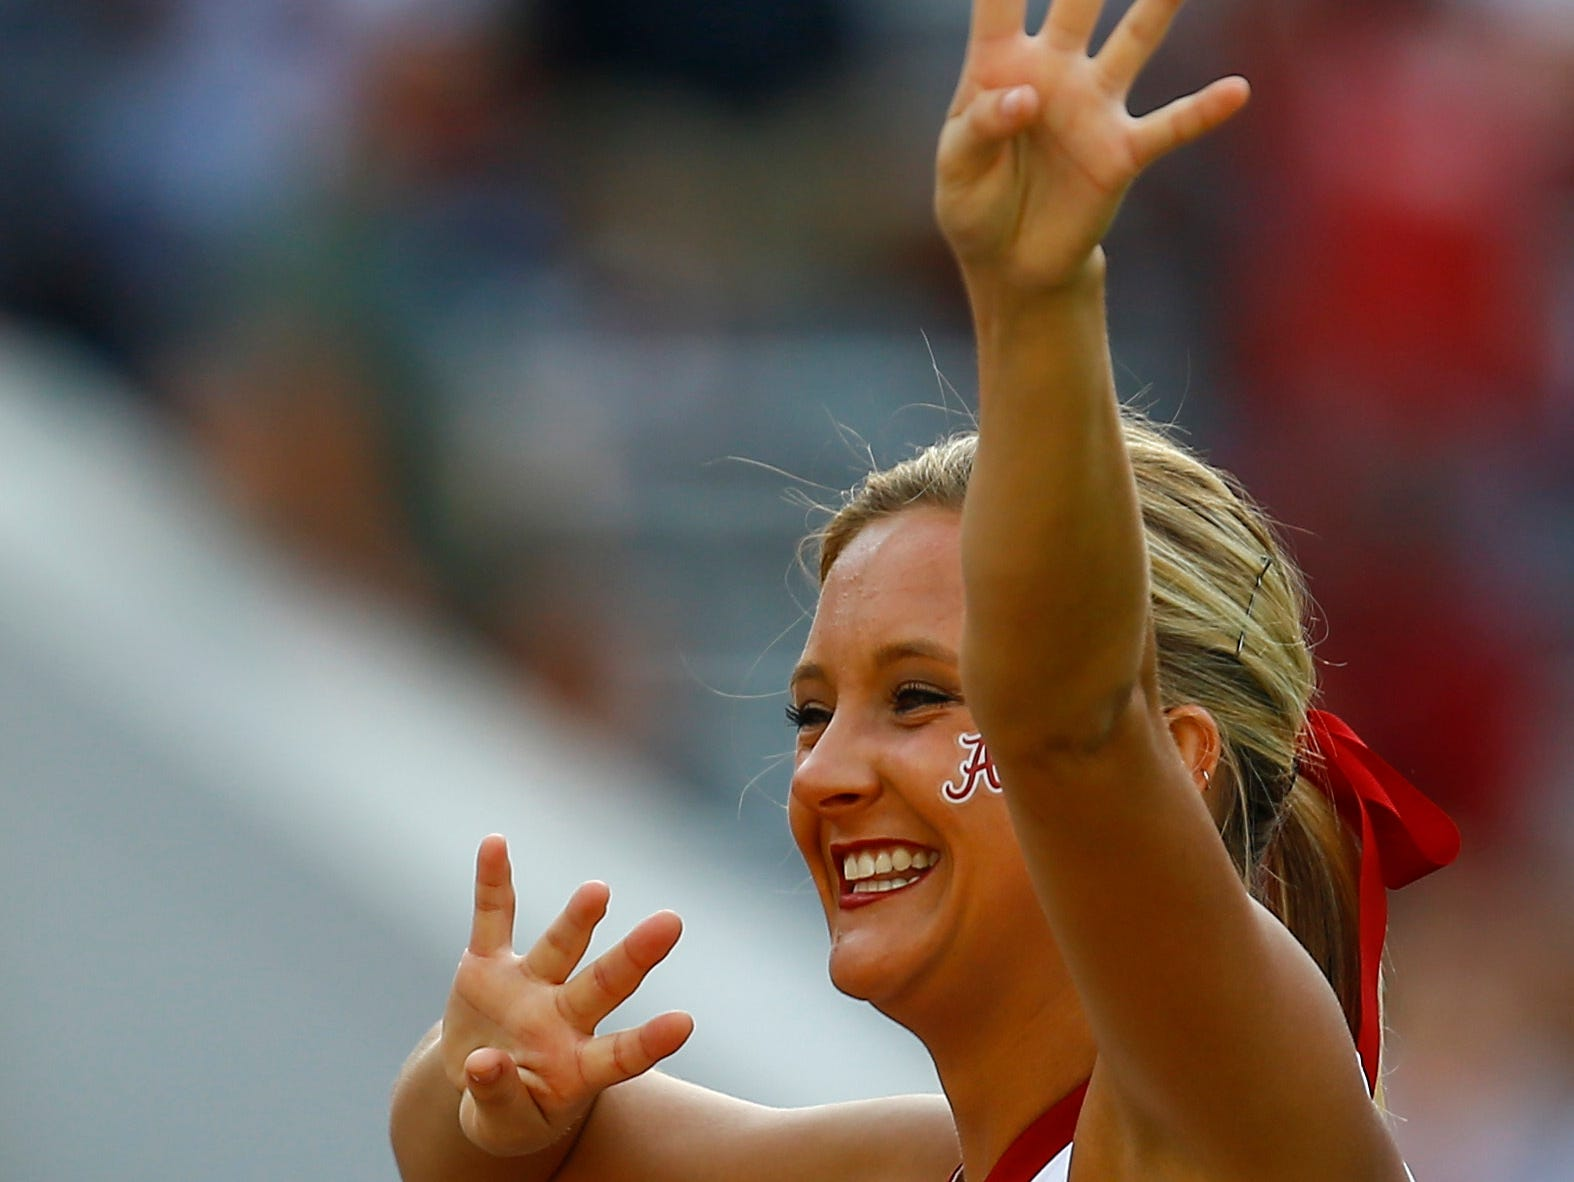 An Alabama cheerleader signals for the fourth quarter during the second half of an NCAA college football game between Alabama and Arkansas State, Saturday, Sept. 8, 2018, in Tuscaloosa, Ala. (AP Photo/Butch Dill)